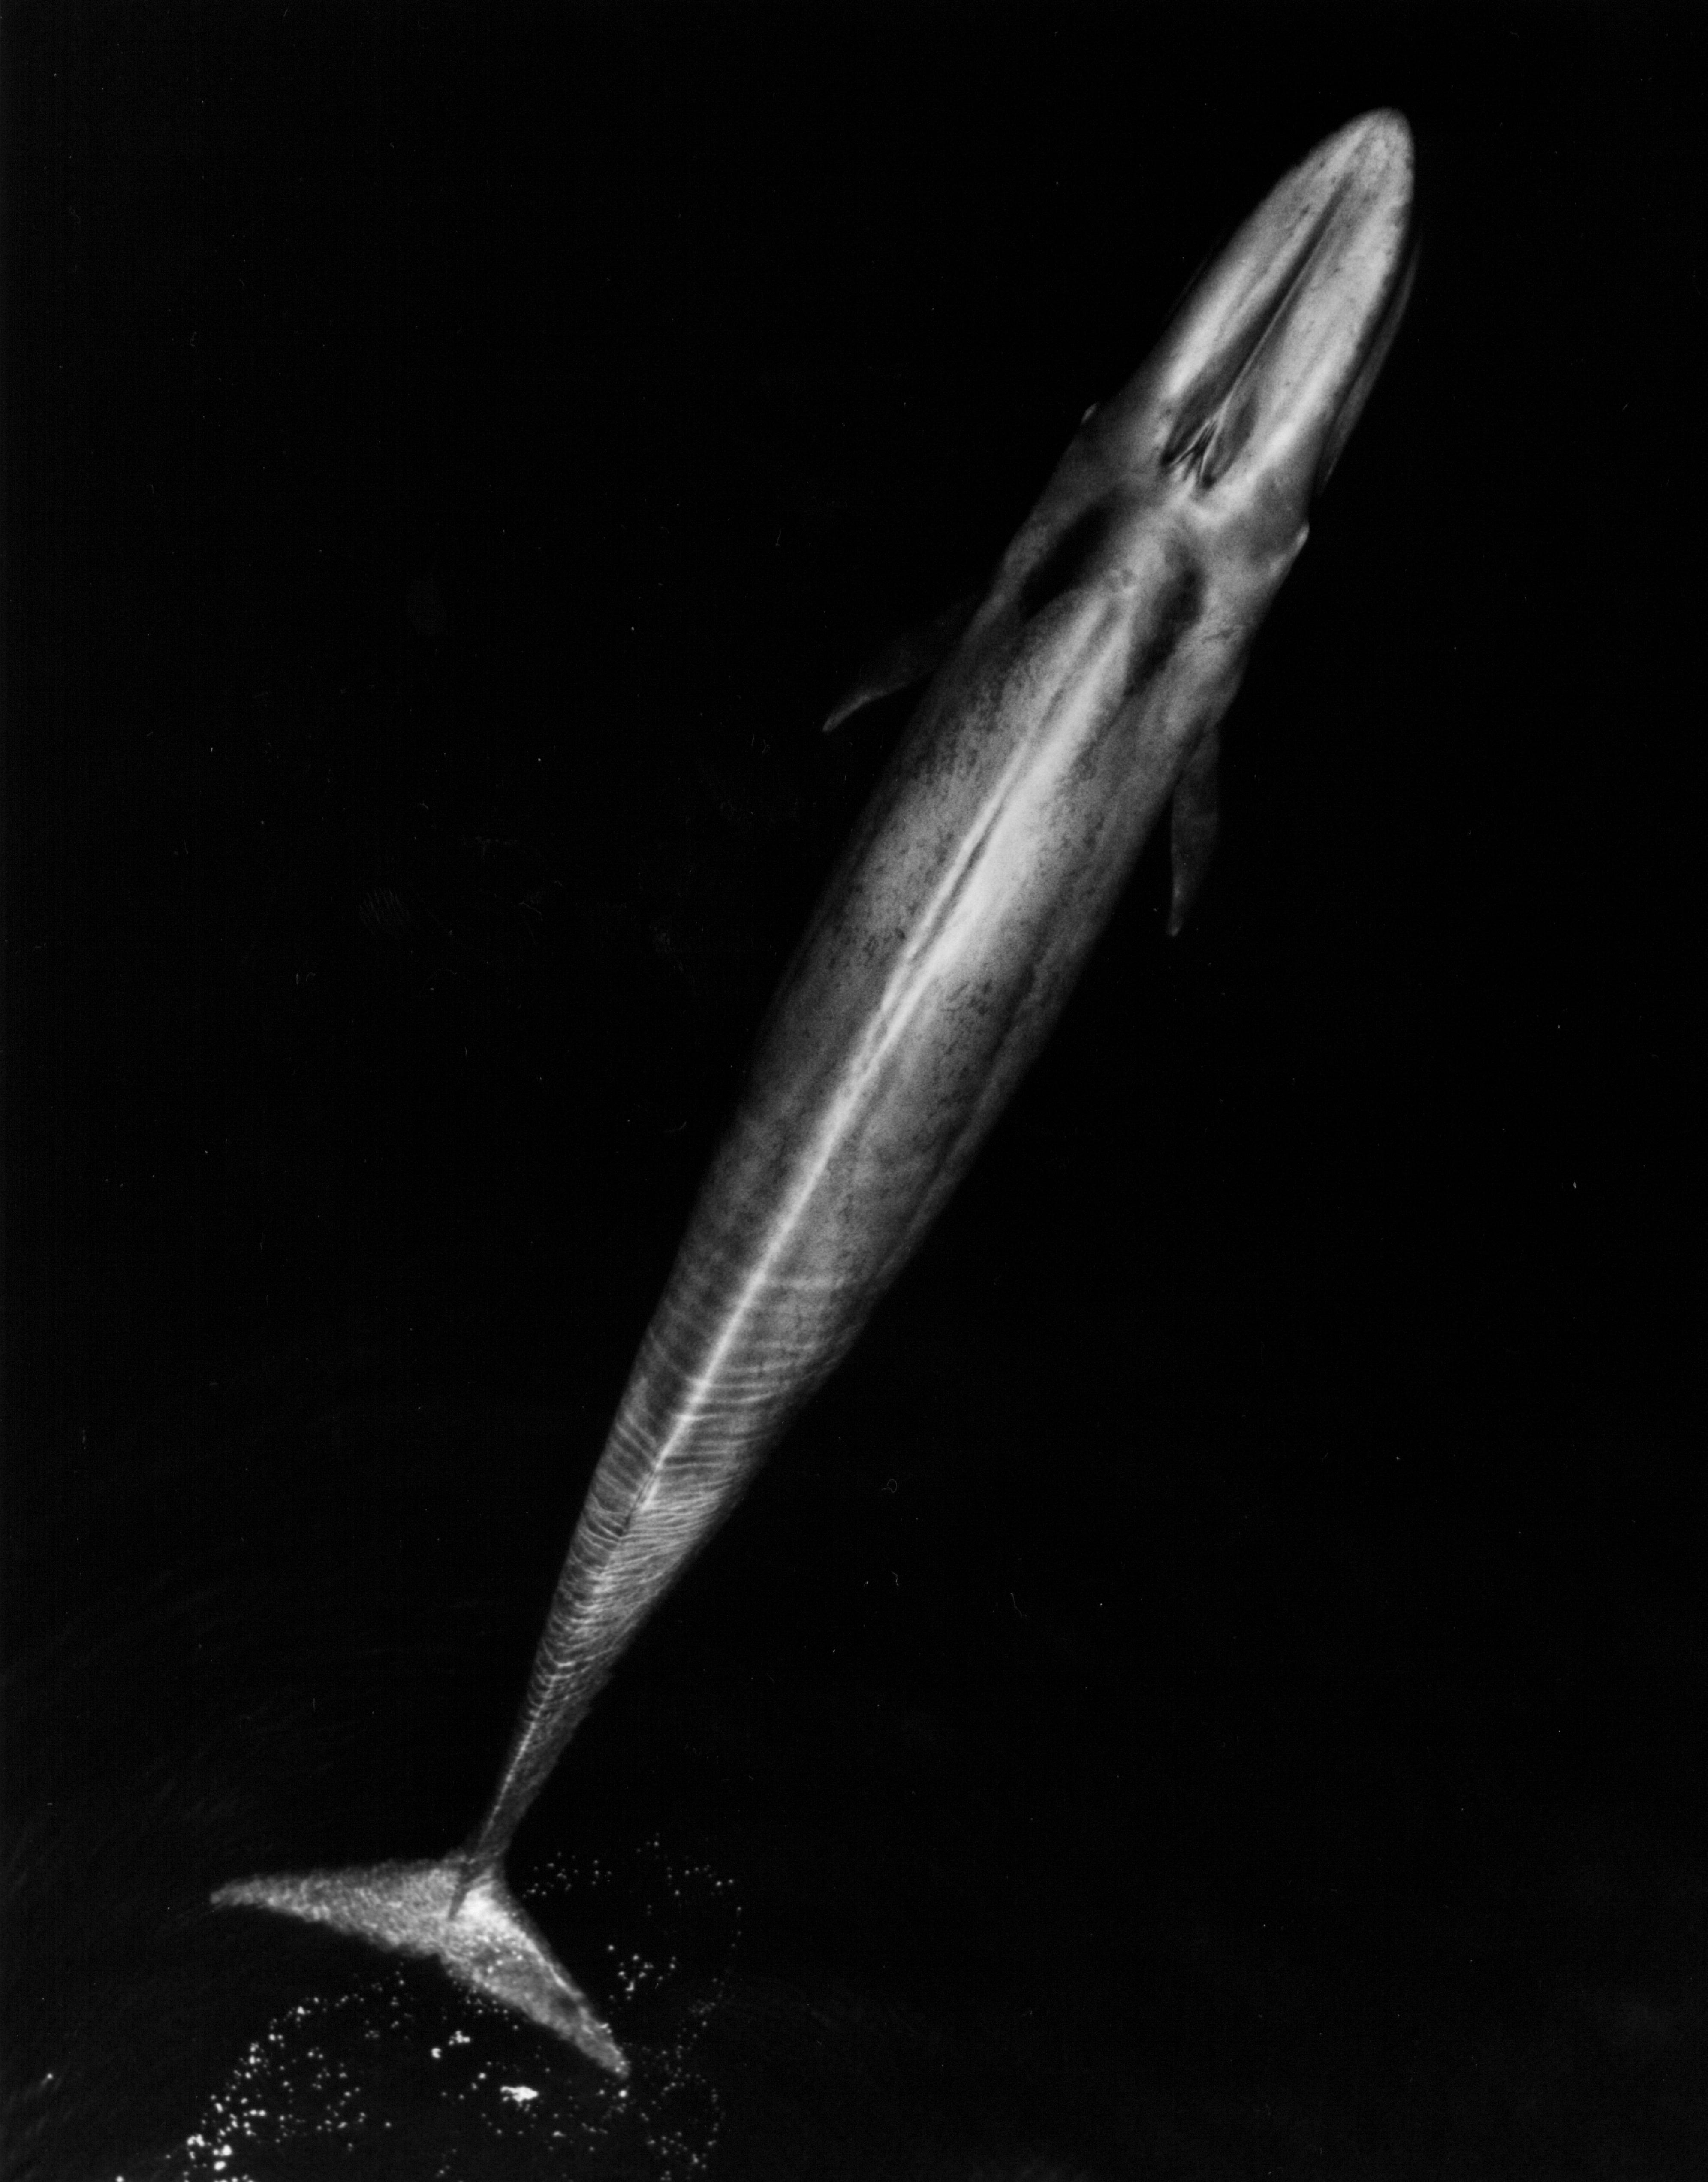 Blue_Whale_001_body_bw